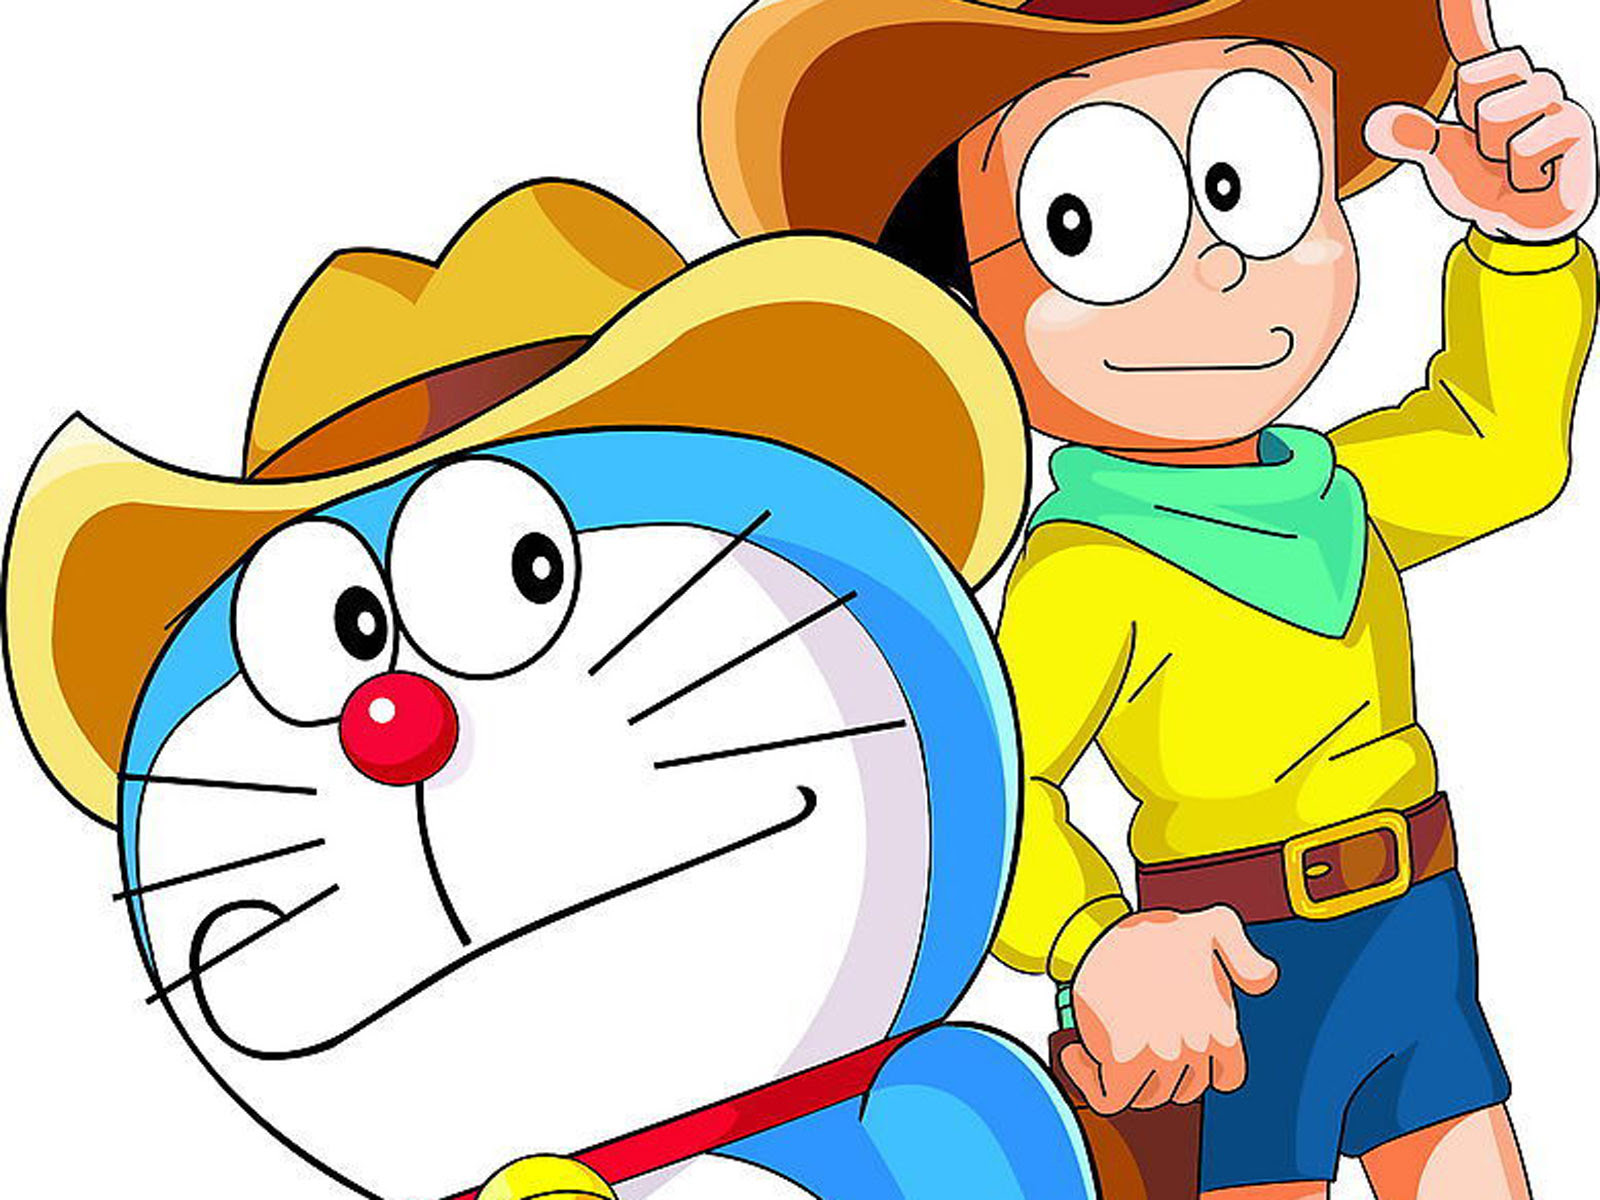 BEST WALLPAPER Wallpaper Pc Doraemon